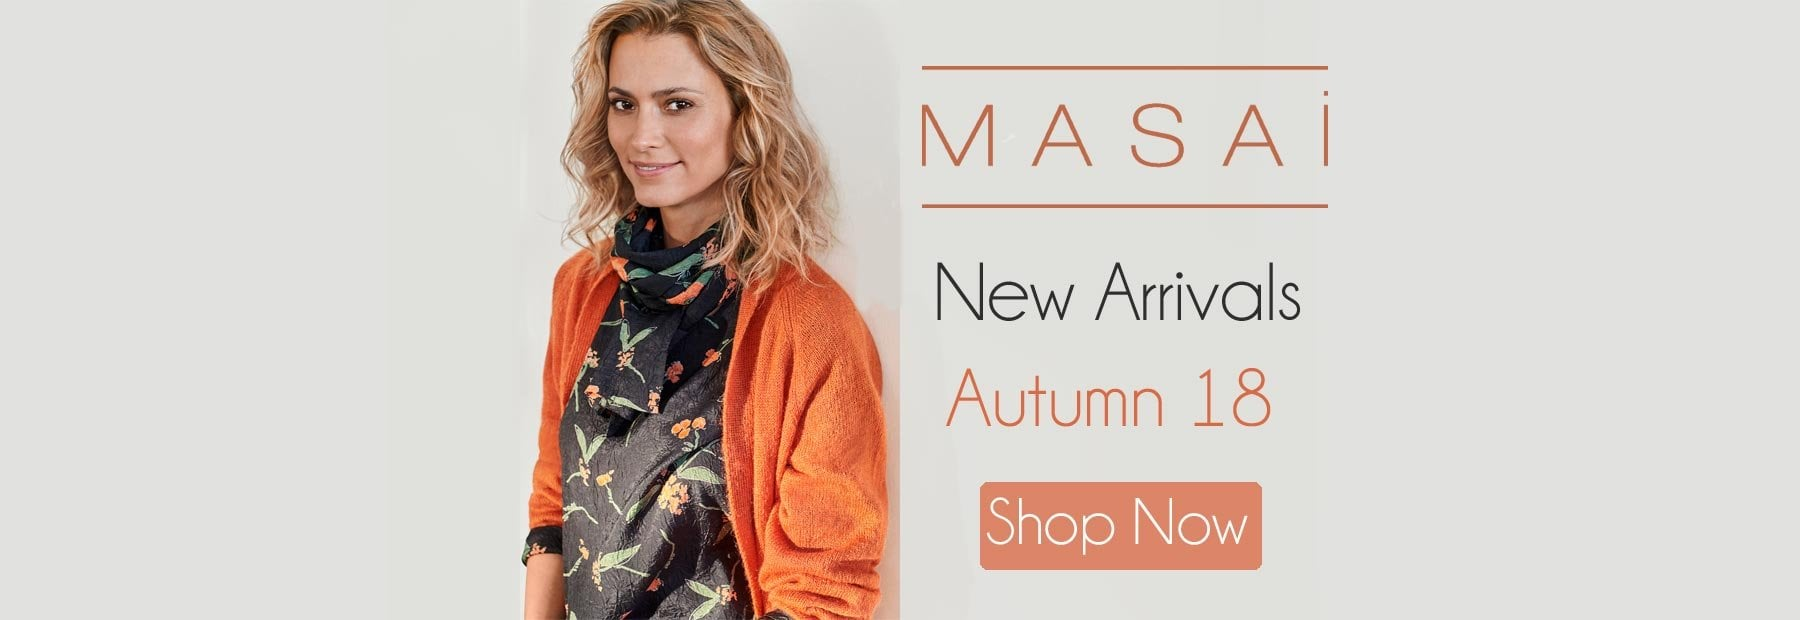 New Masai Autumn Arrivals